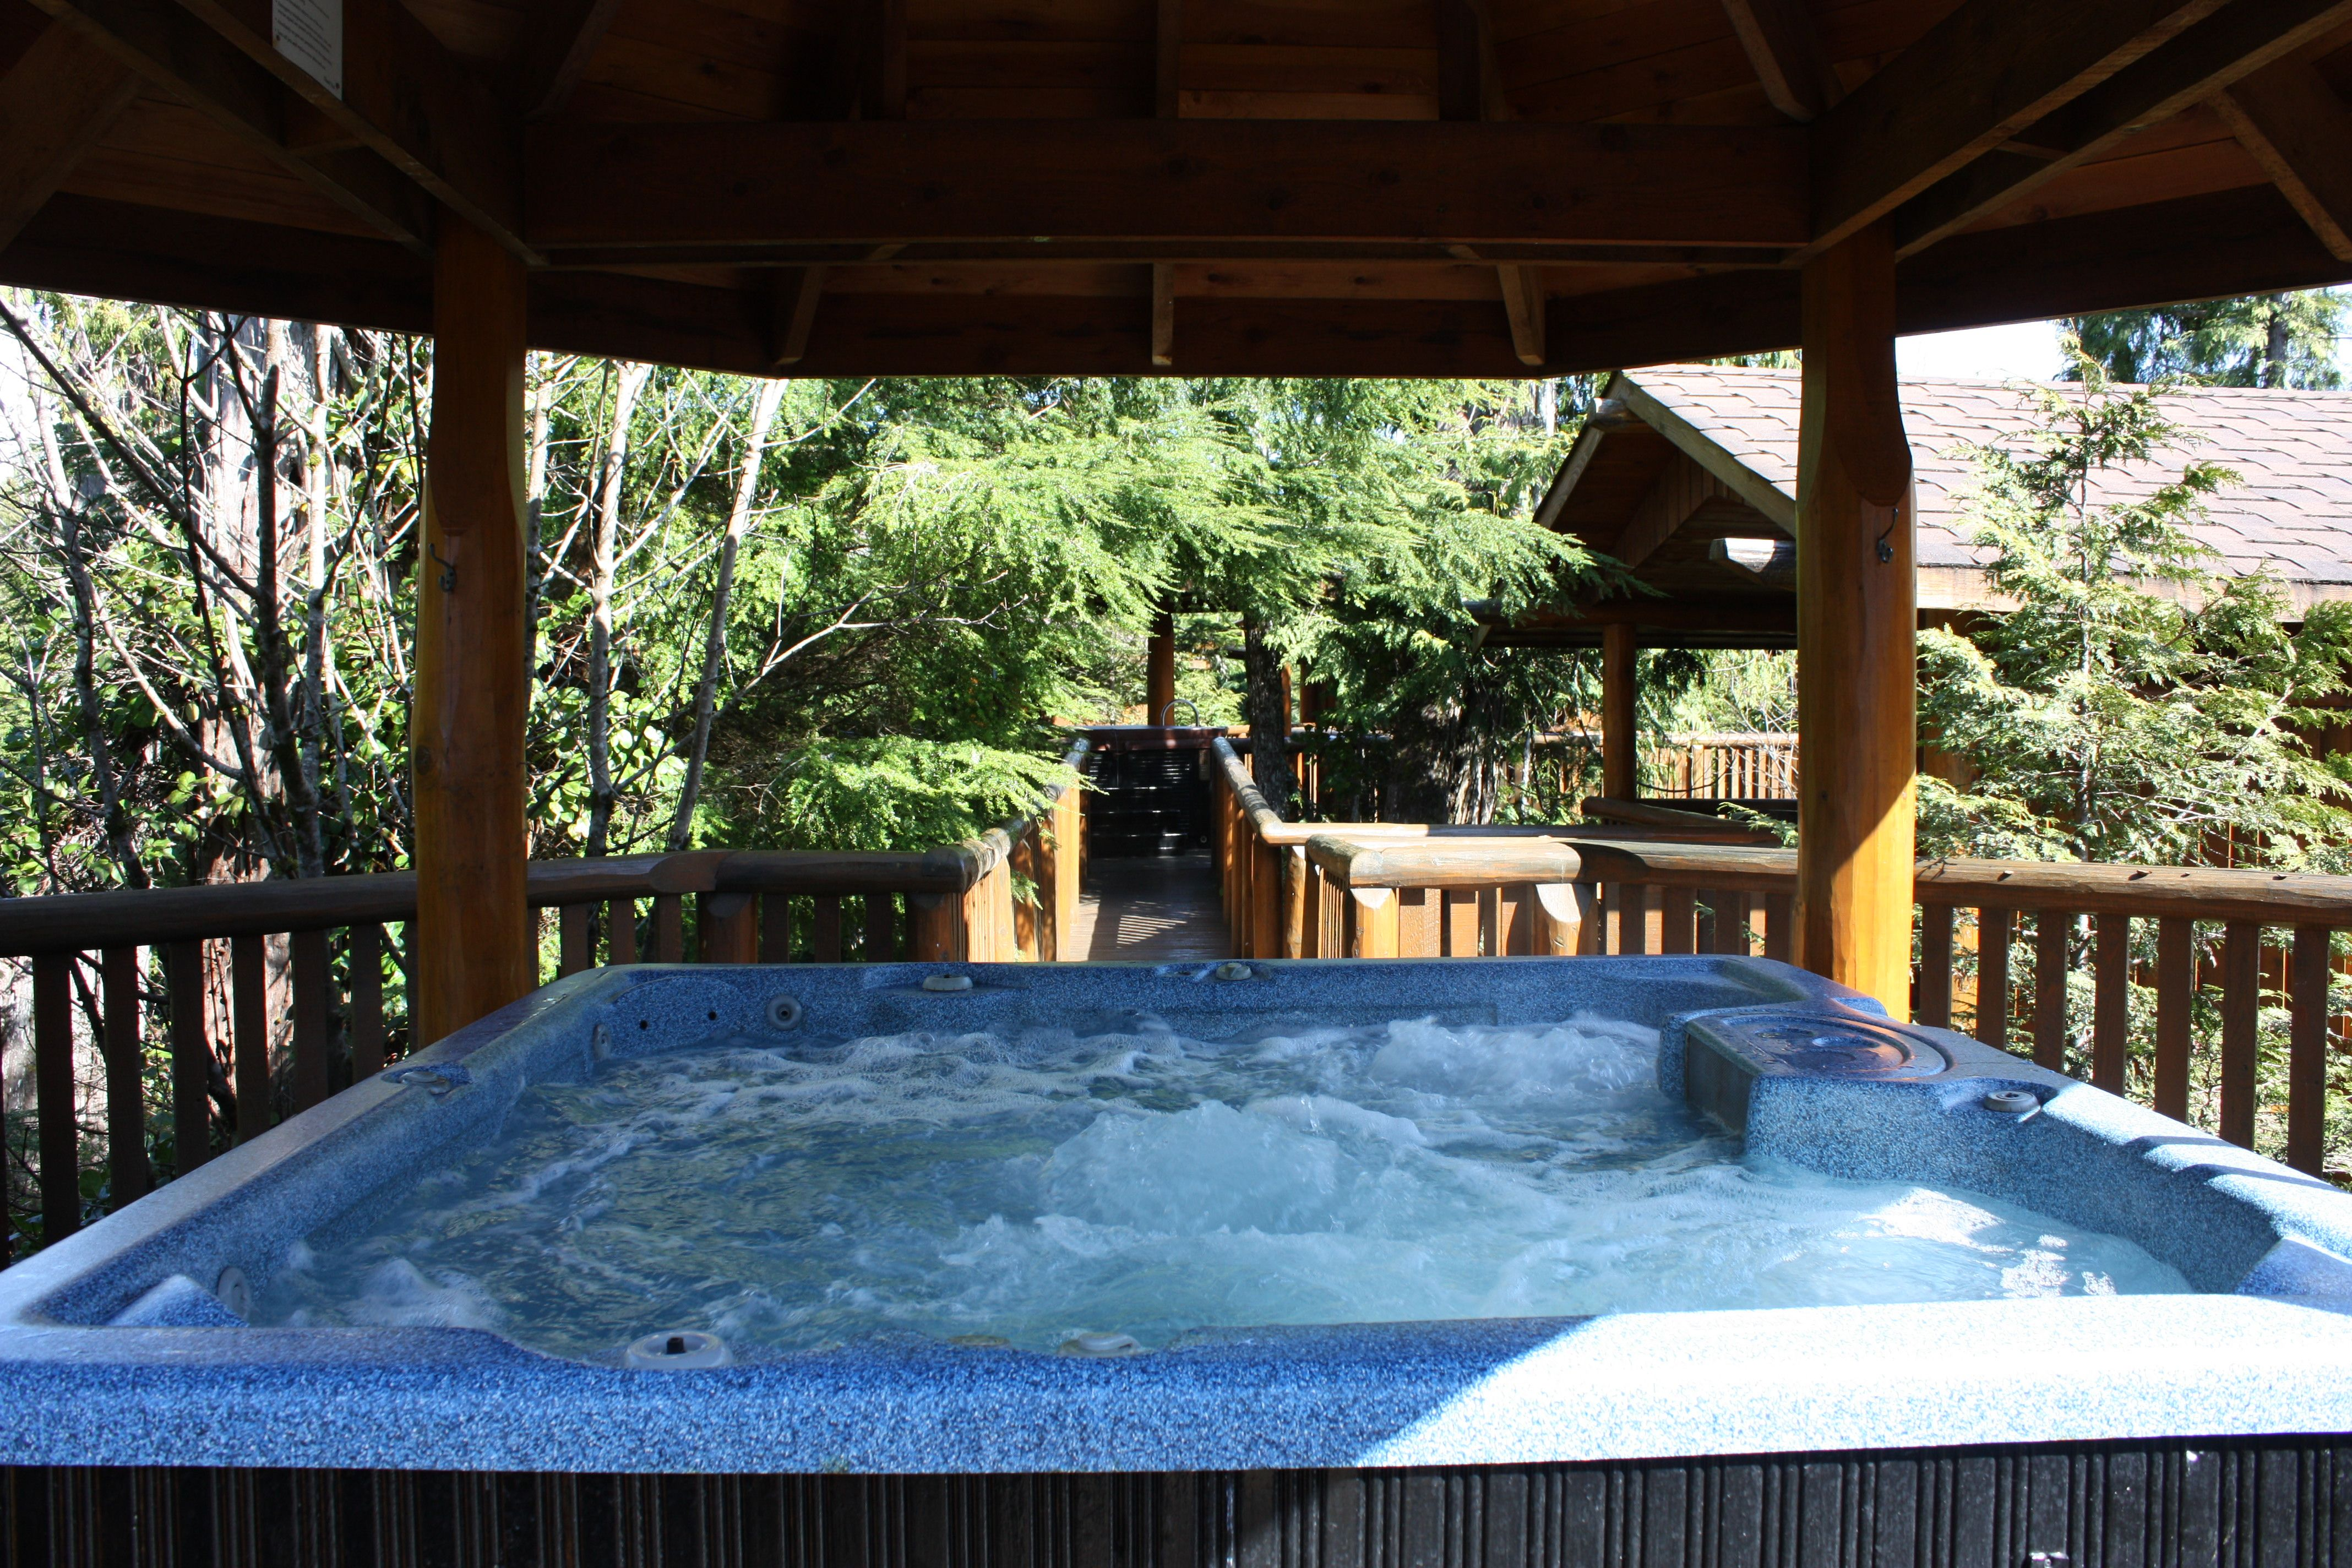 Relax In A Hot Tub In The Trees In Our Rainforest Cabins Treehouse Cabins Cabin Hot Tub